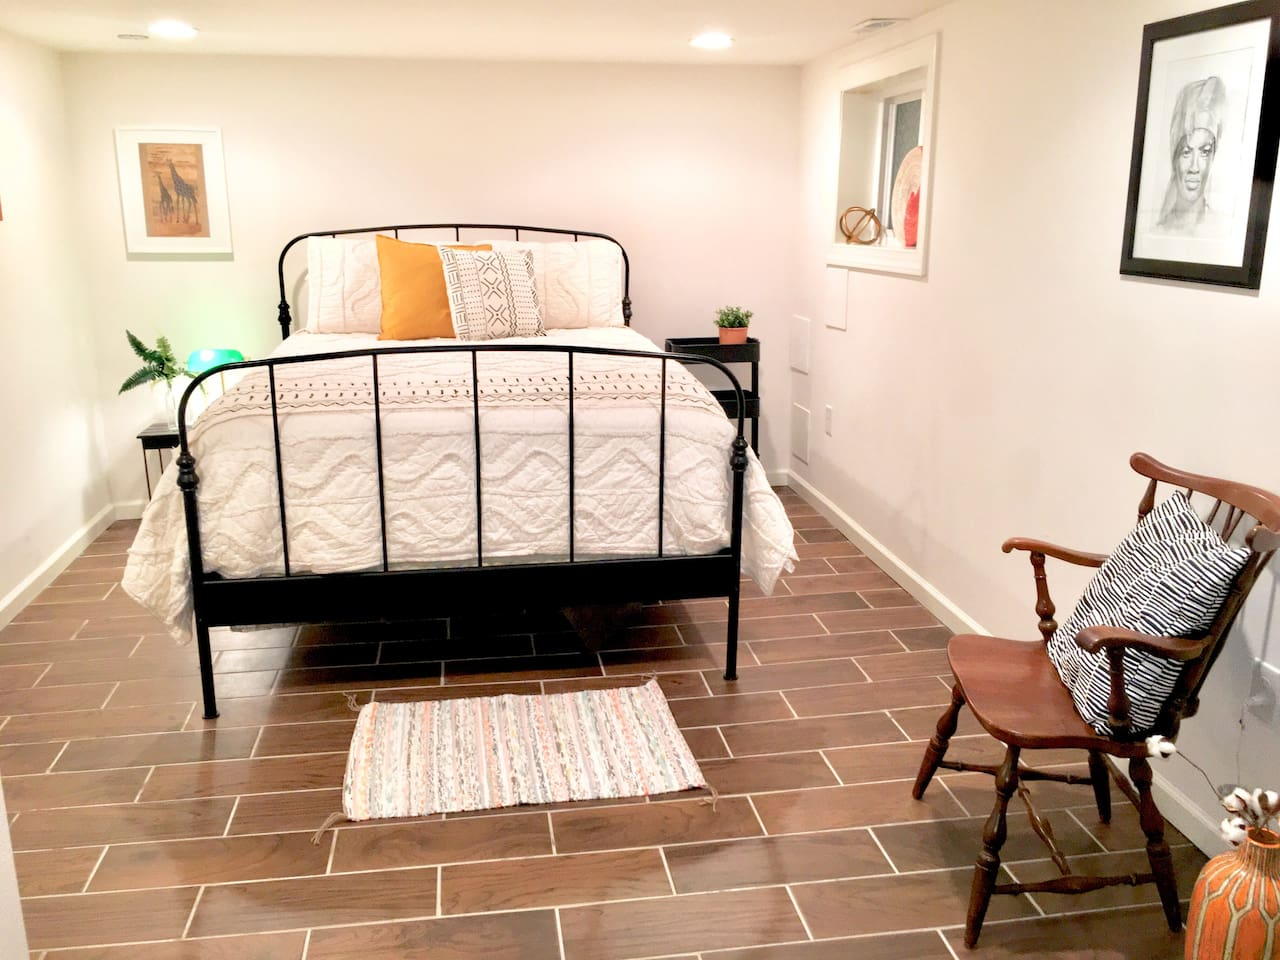 Spacious room with Queen Bed, Smart TV, and sitting nook